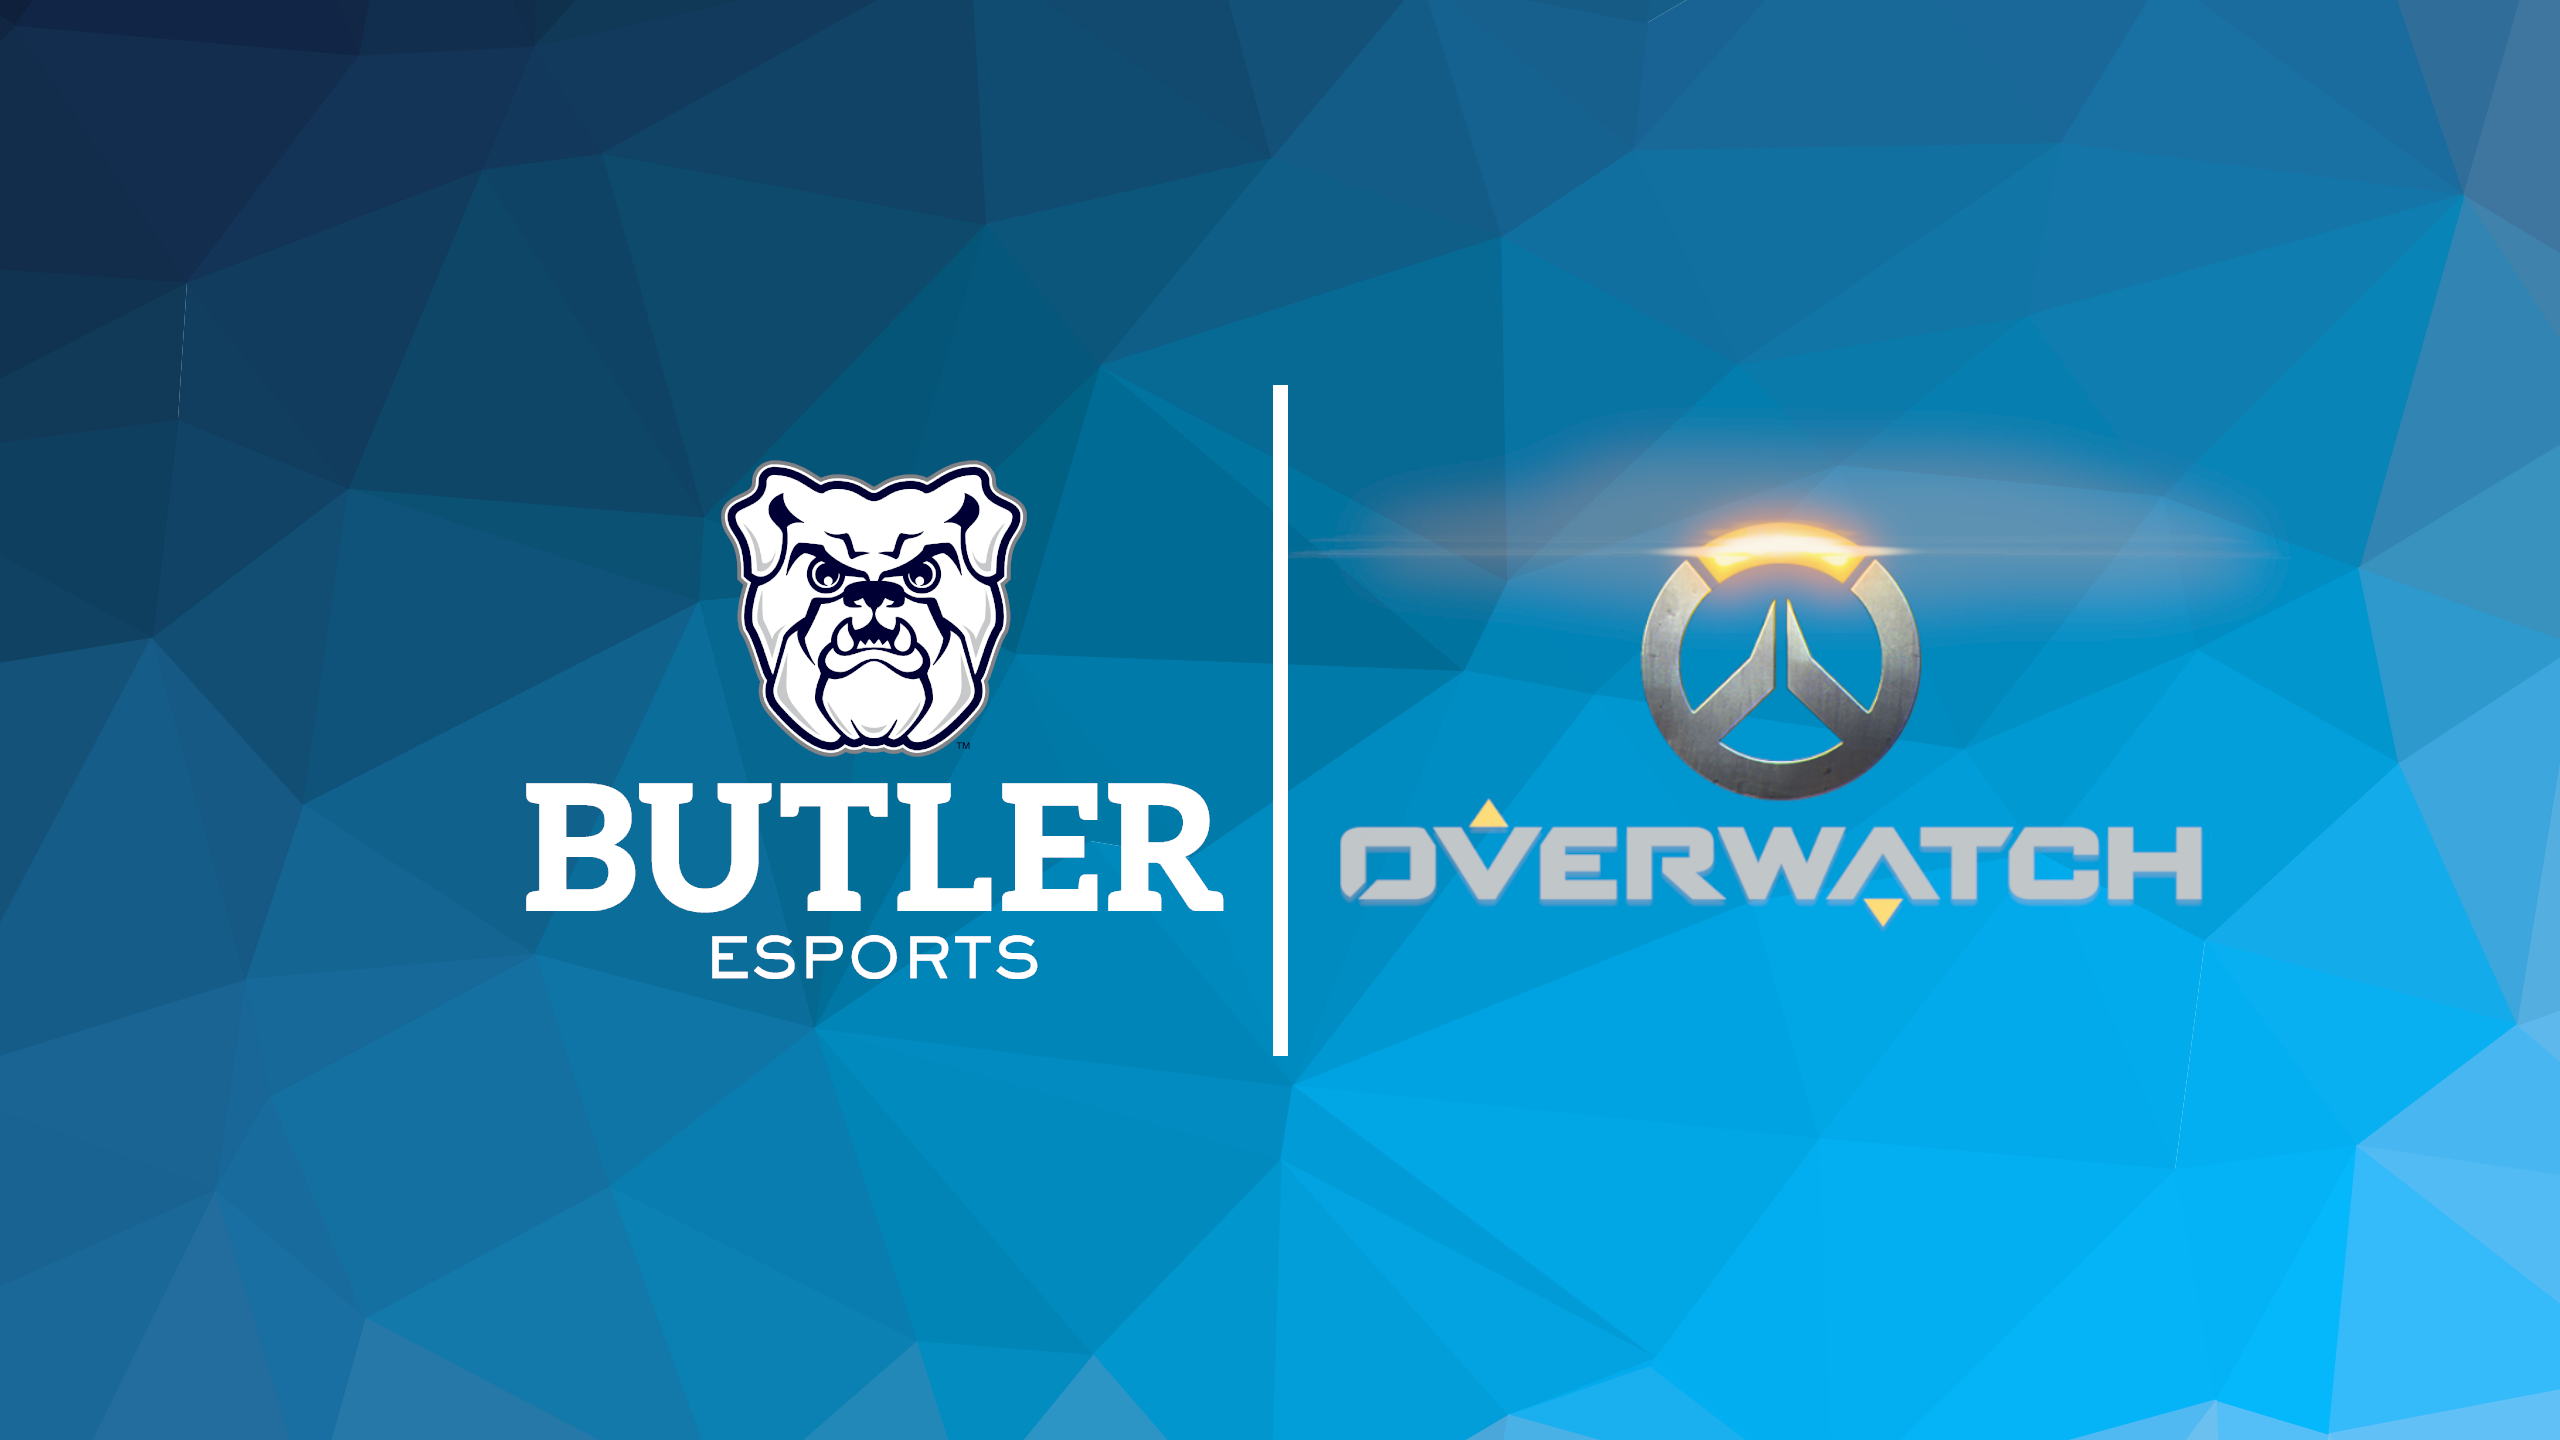 Butler Overwatch - Tespa Regional League Tournament